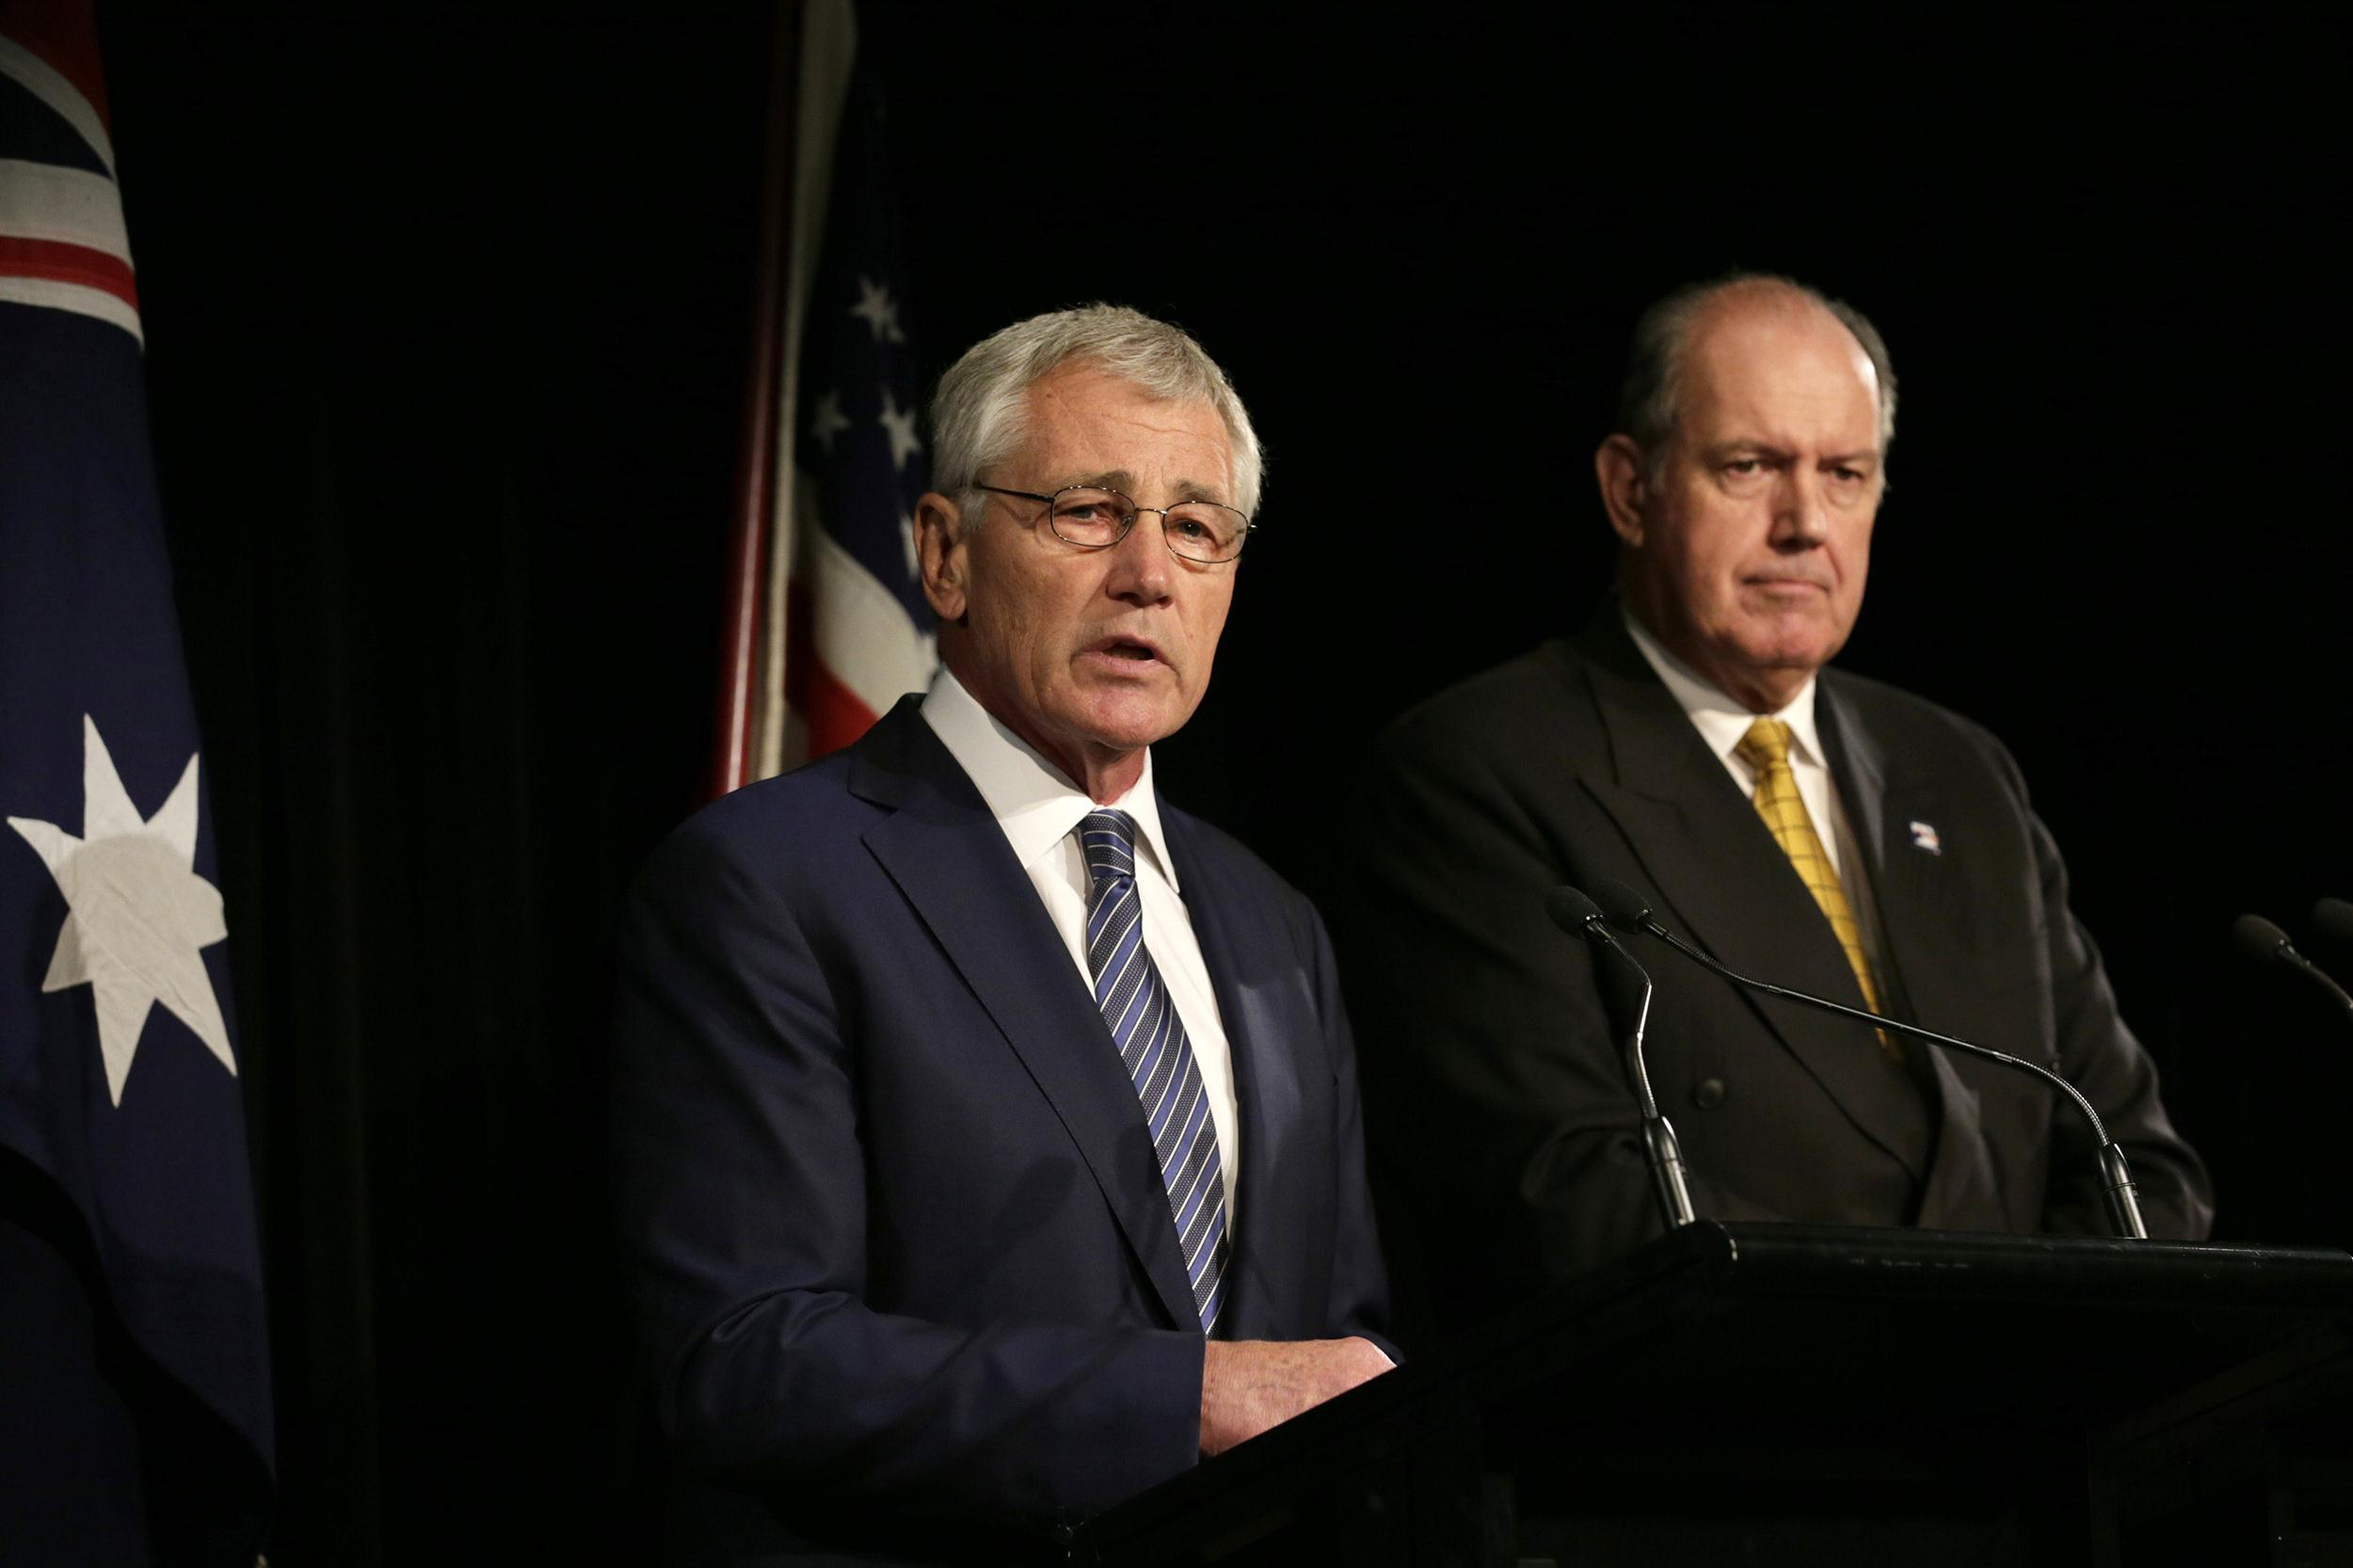 Image: US Secretary of Defense Chuck Hagel and Australia's Defence Minister David Johnston speaking during a joint press conference in Sydney, on Aug. 11 .